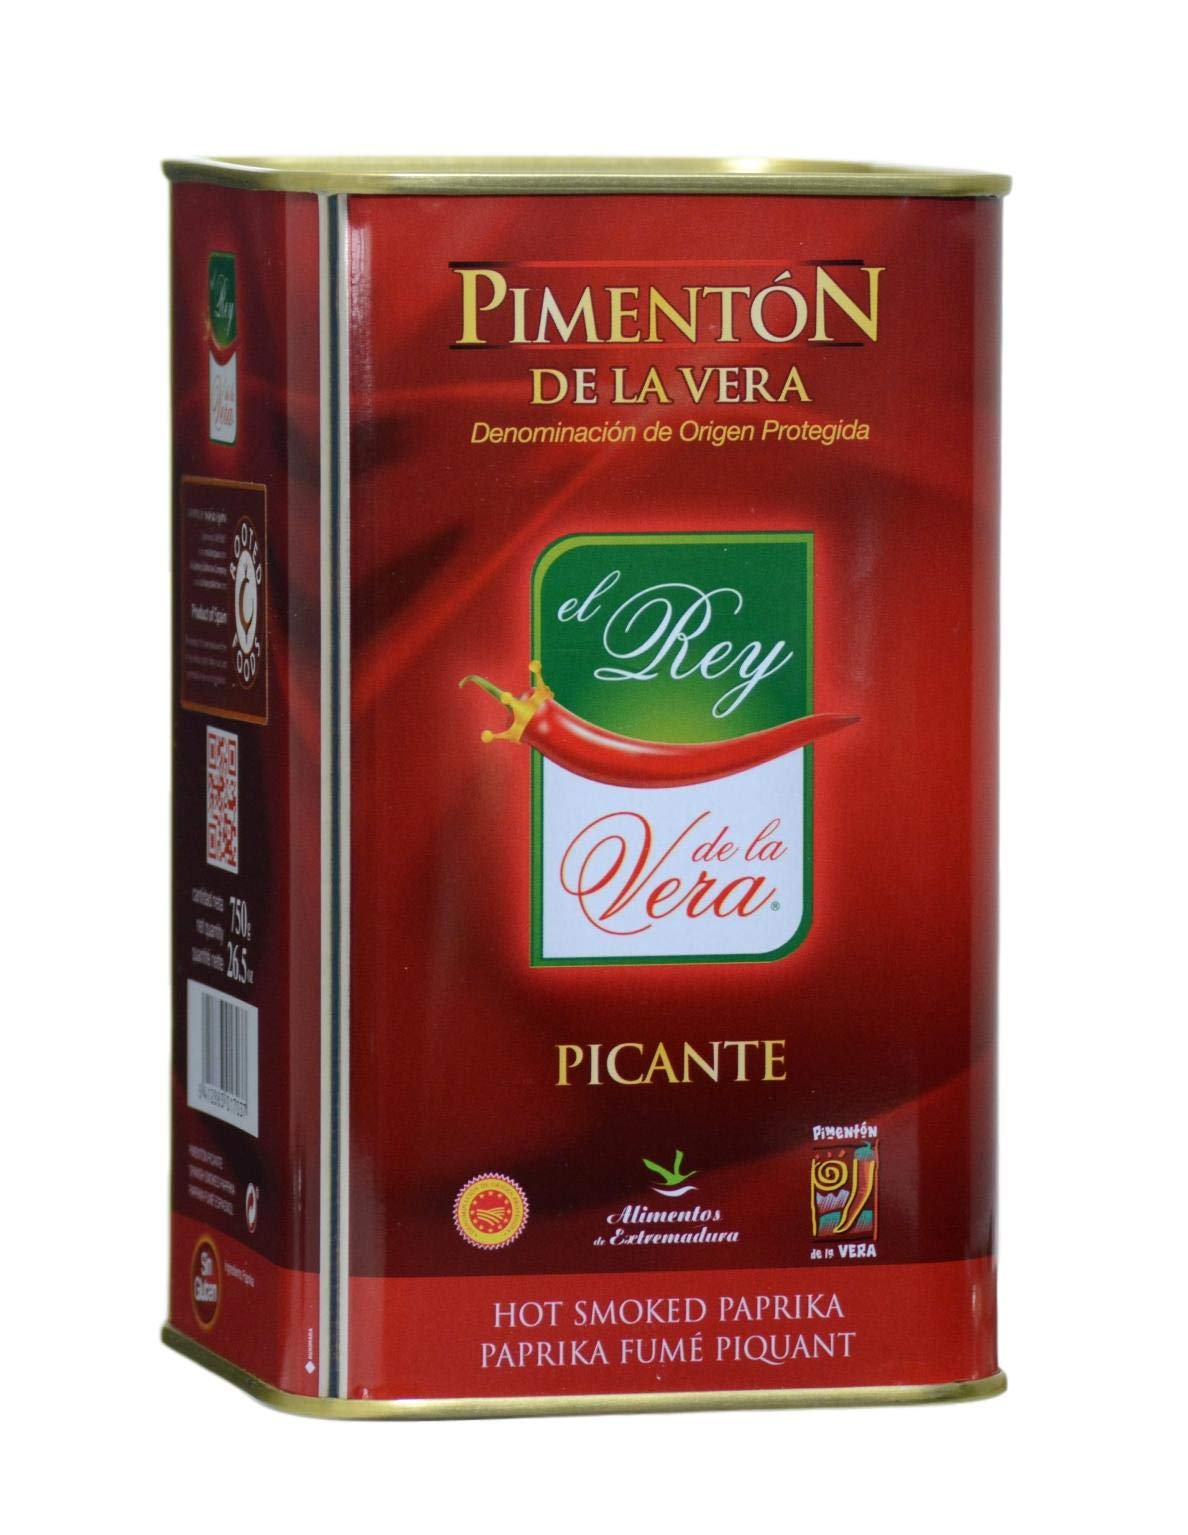 Spicy Hot Smoked Paprika (Pimenton) from Spain 750g